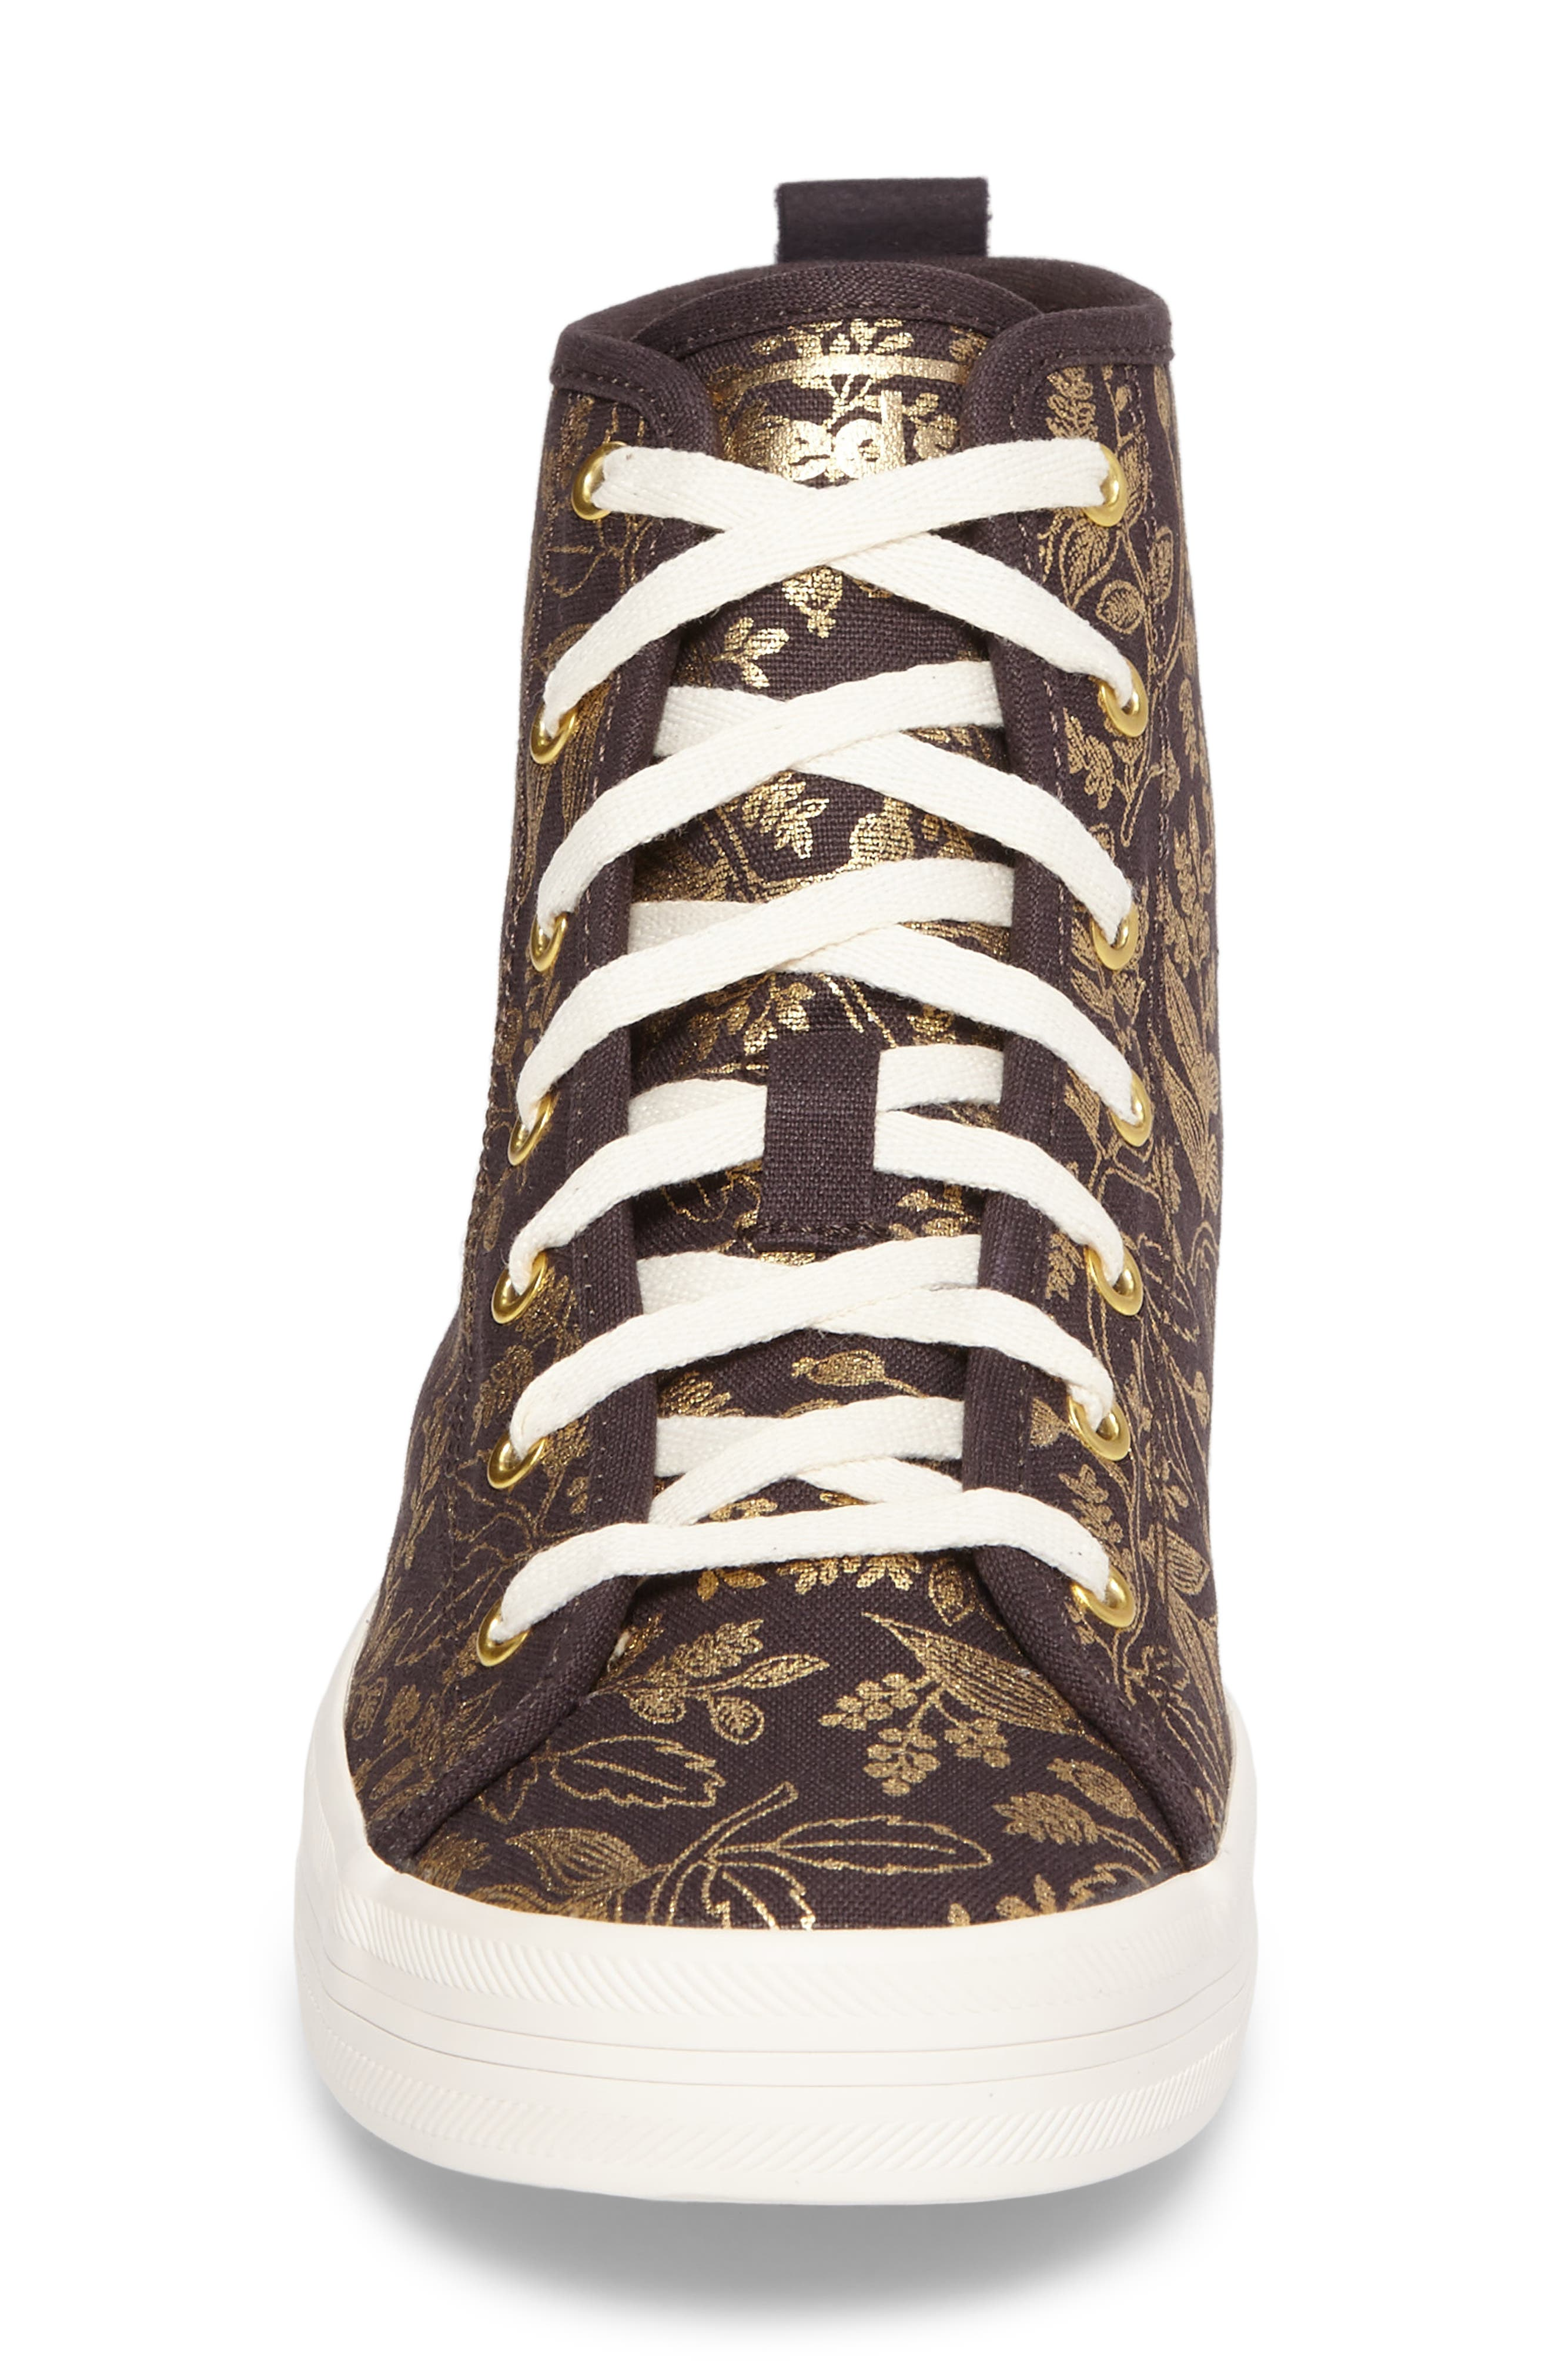 x Rifle Paper Co. Queen Anne High Top Sneaker,                             Alternate thumbnail 4, color,